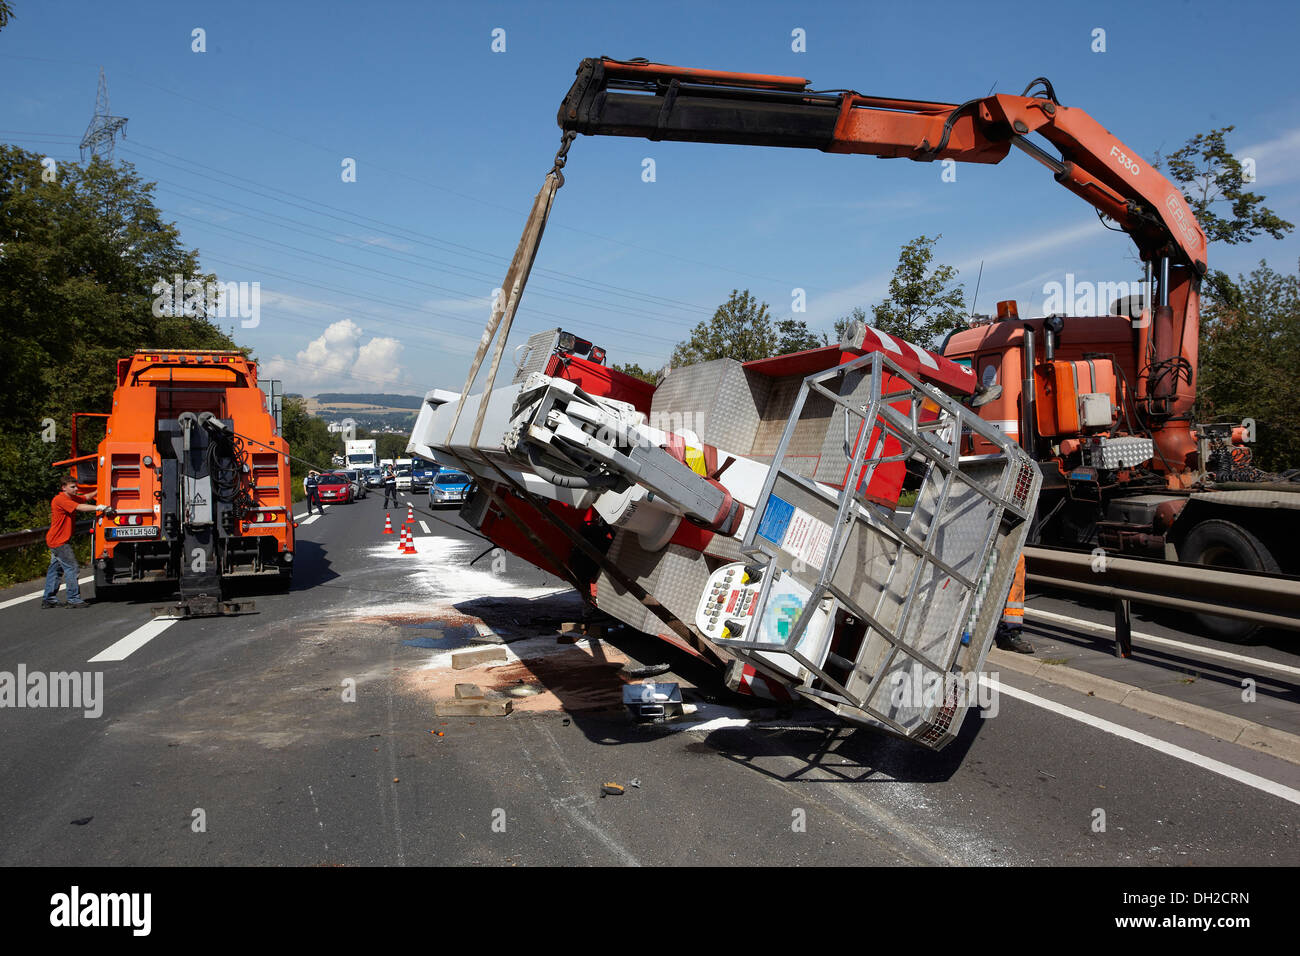 Accident with a mobile elevating working platform, on the B9 road near Weissenthurm, Rhineland-Palatinate - Stock Image